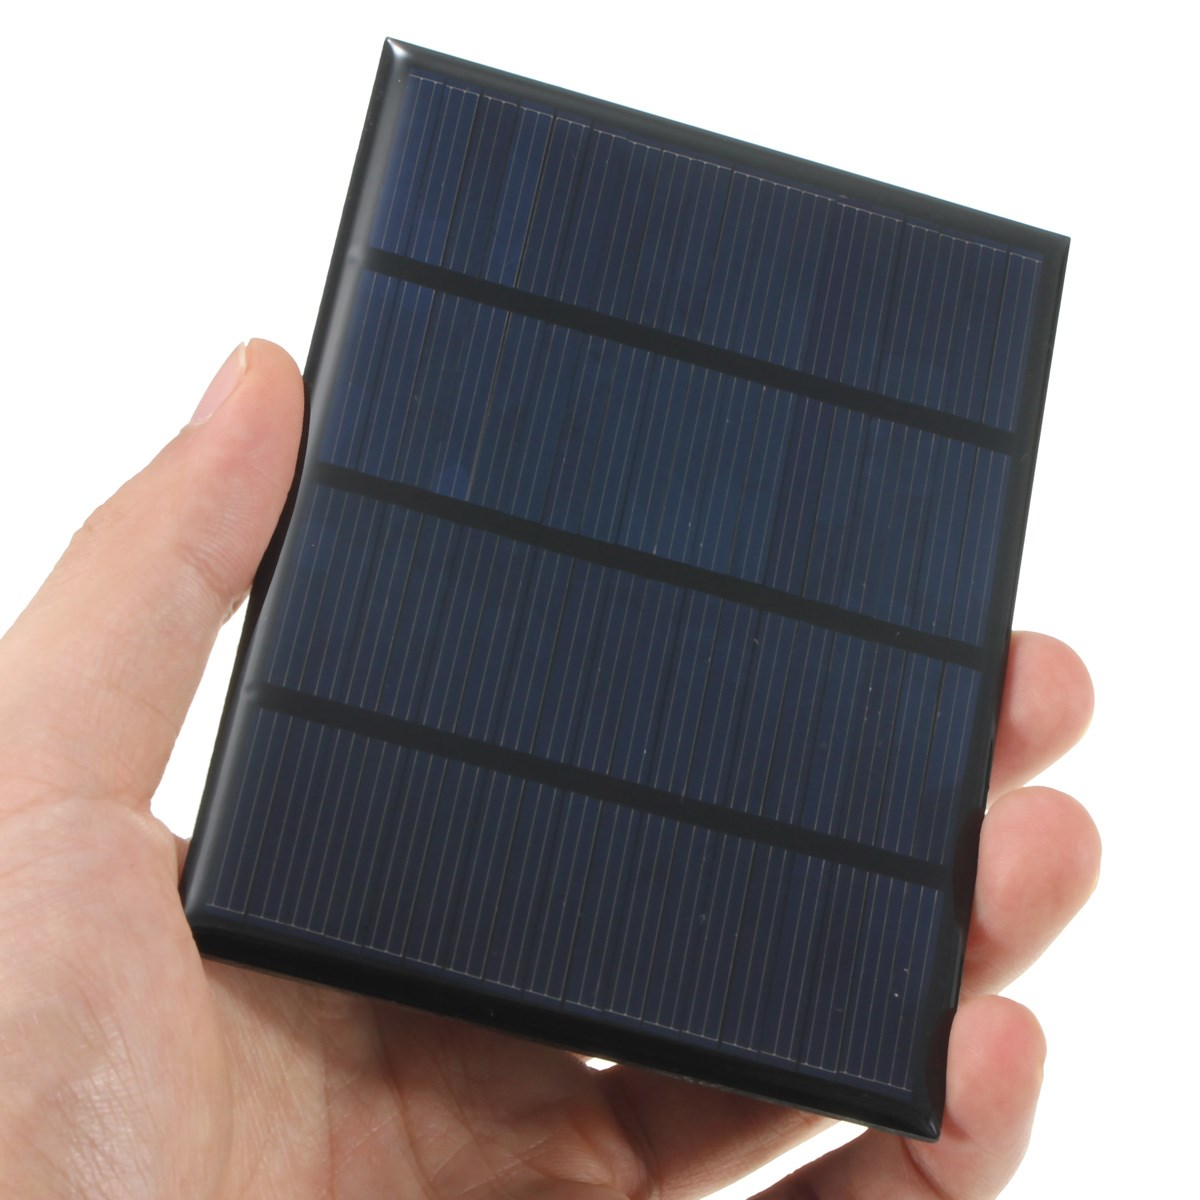 universal 12V 1.5W Standard Epoxy Solar Panels Mini Solar Cells Polycrystalline Silicon DIY Battery Power Charge Module 115x85mm(China (Mainland))